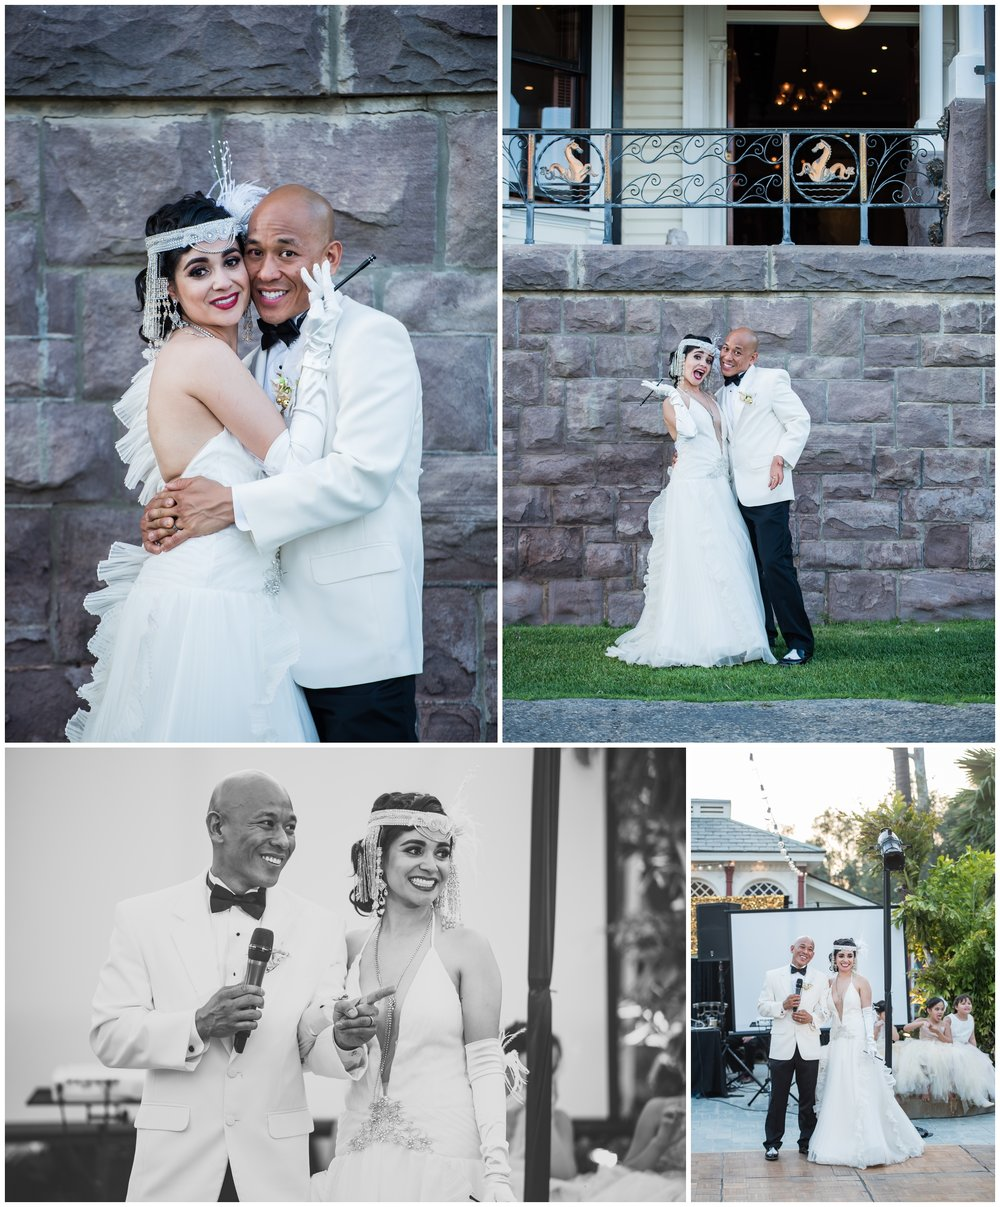 lunabellaphotos- new hall mansion-bride speech